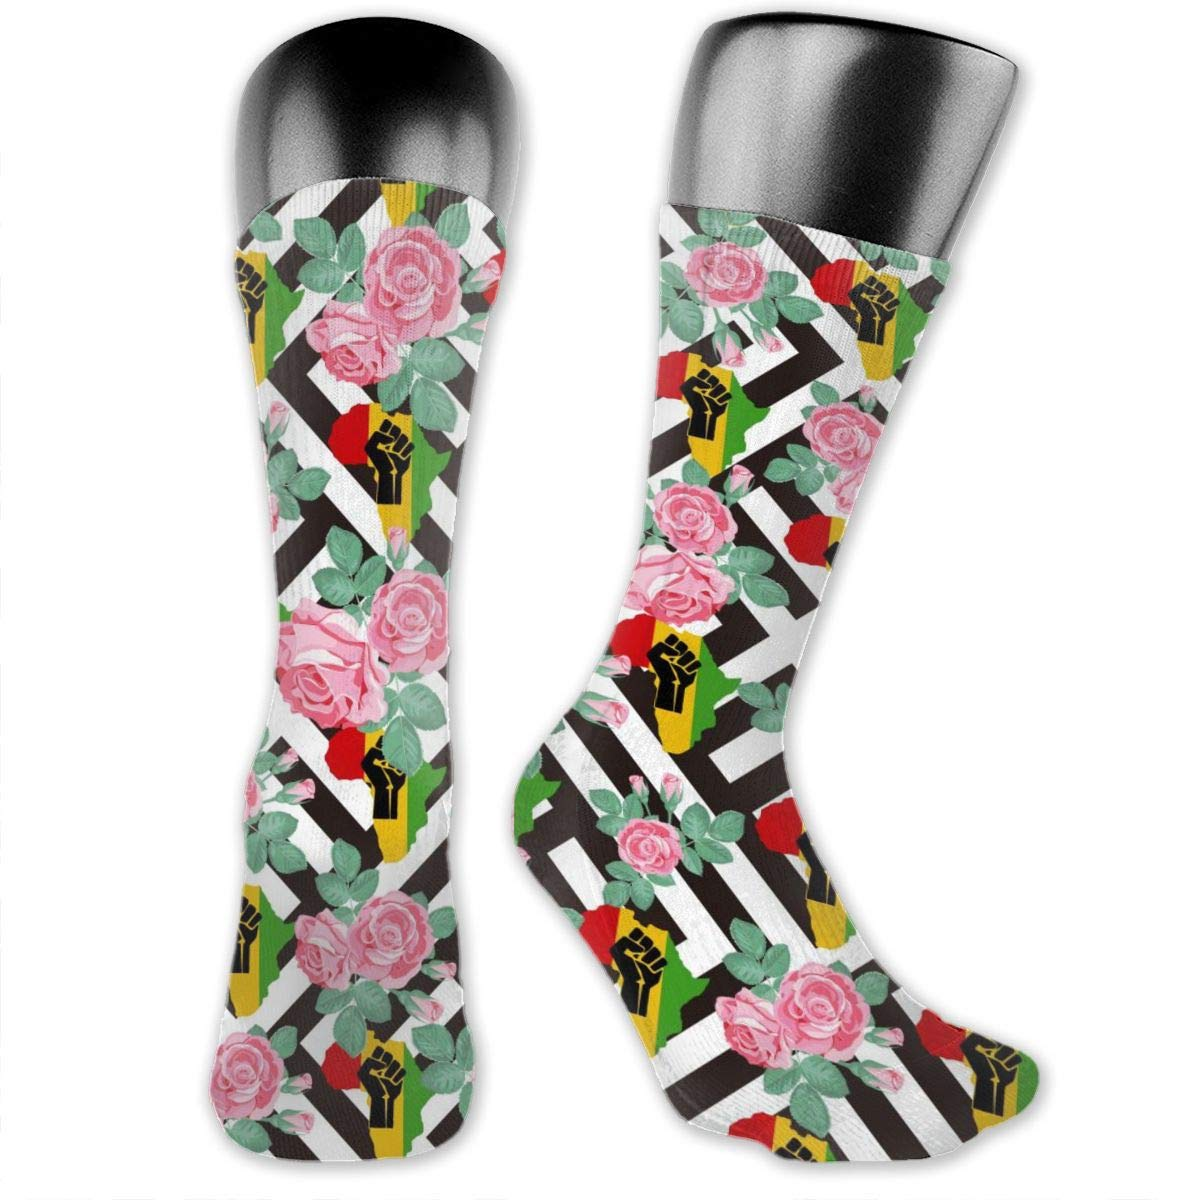 Casual Africa Cotton Dress Socks For Men Women Socks